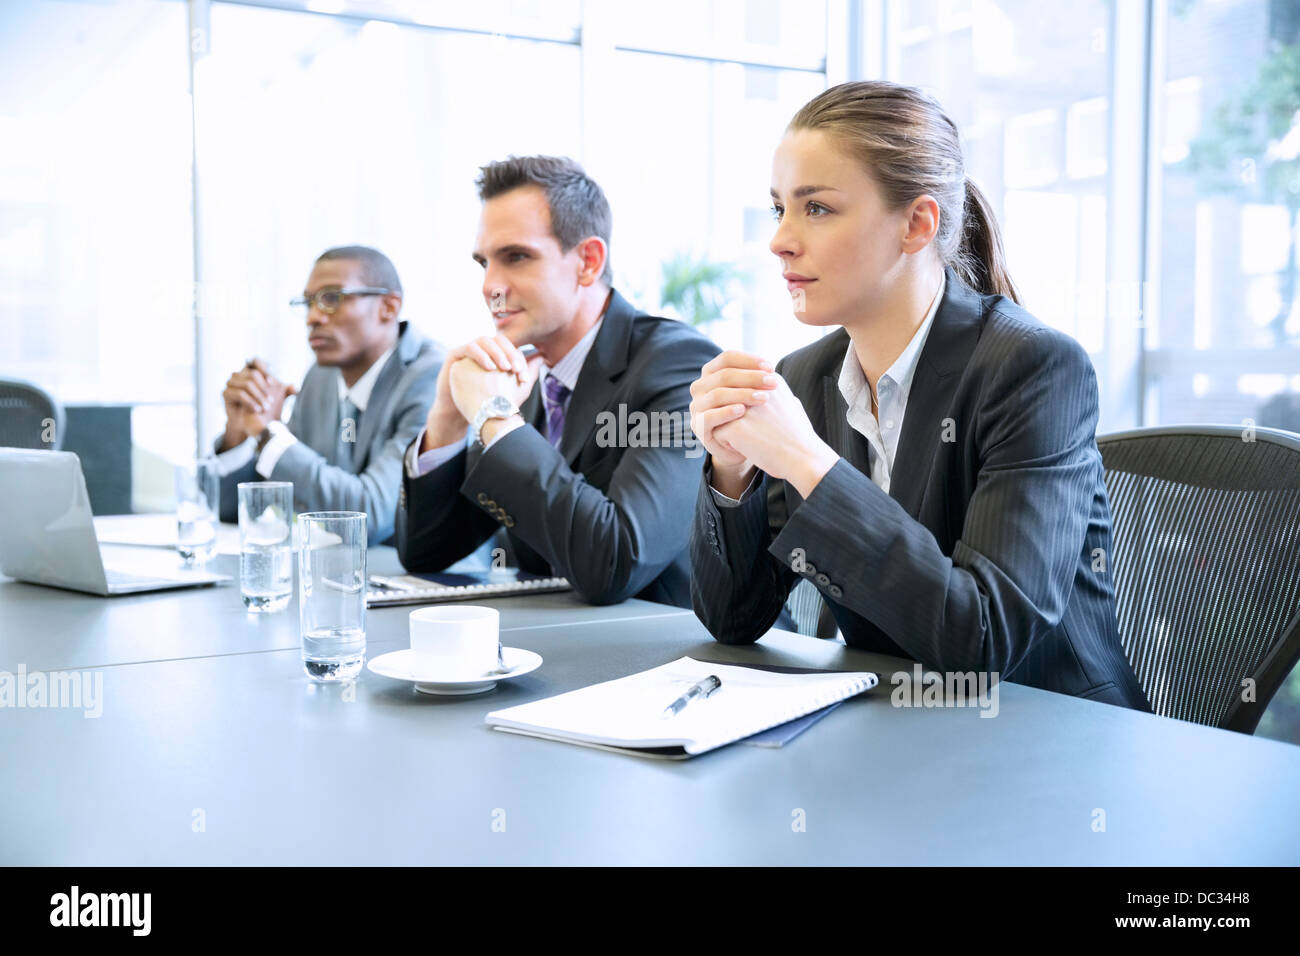 Attentive business people with hands clasped in meeting - Stock Image